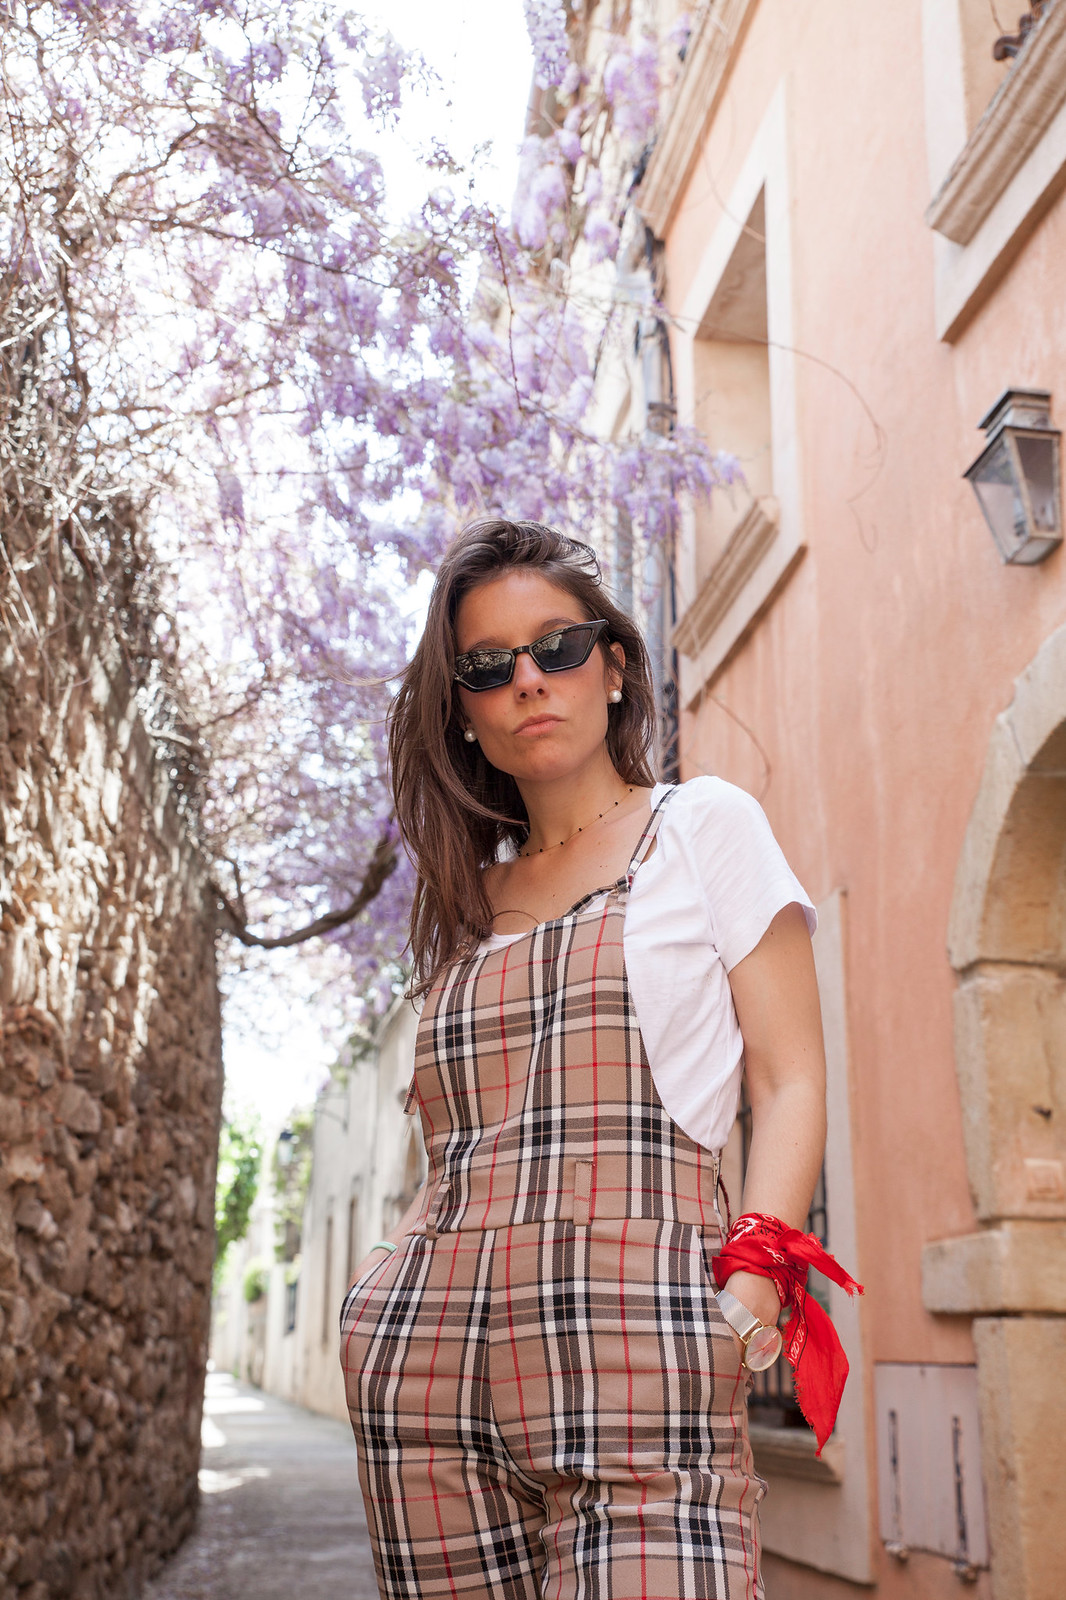 05_BURBERRY_OVERALL_TRICIRCULO_INFLUENCER_THEGUESTGIRL_LAURA_SANTOLARIA